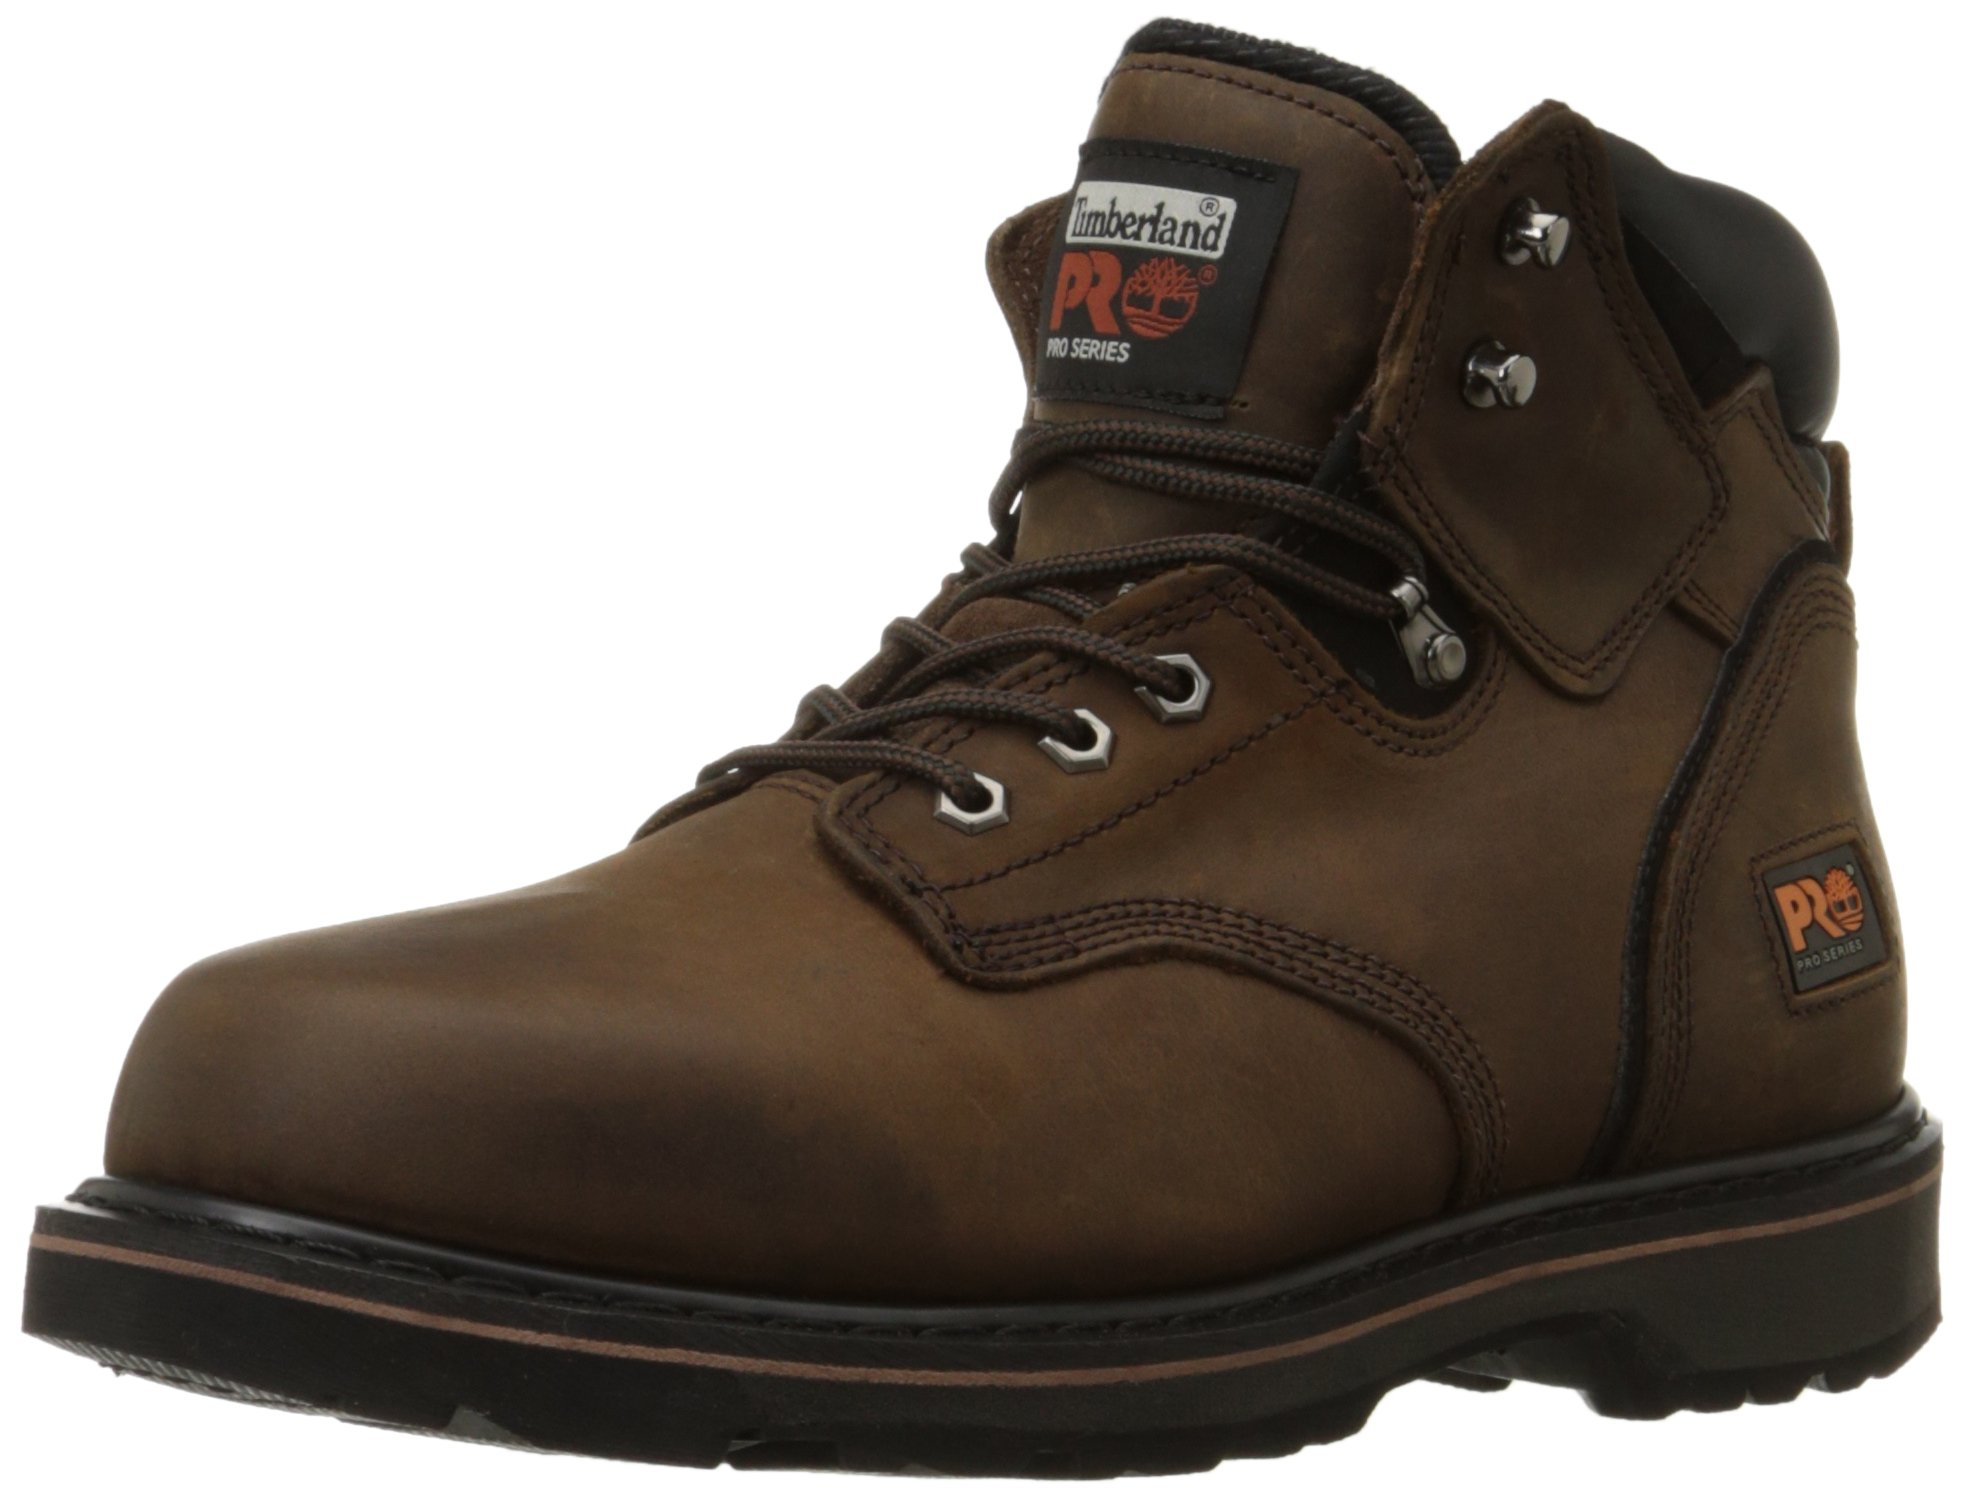 Timberland PRO Men's Pitboss 6'' Soft-Toe Boot,Brown,9.5 M by Timberland PRO